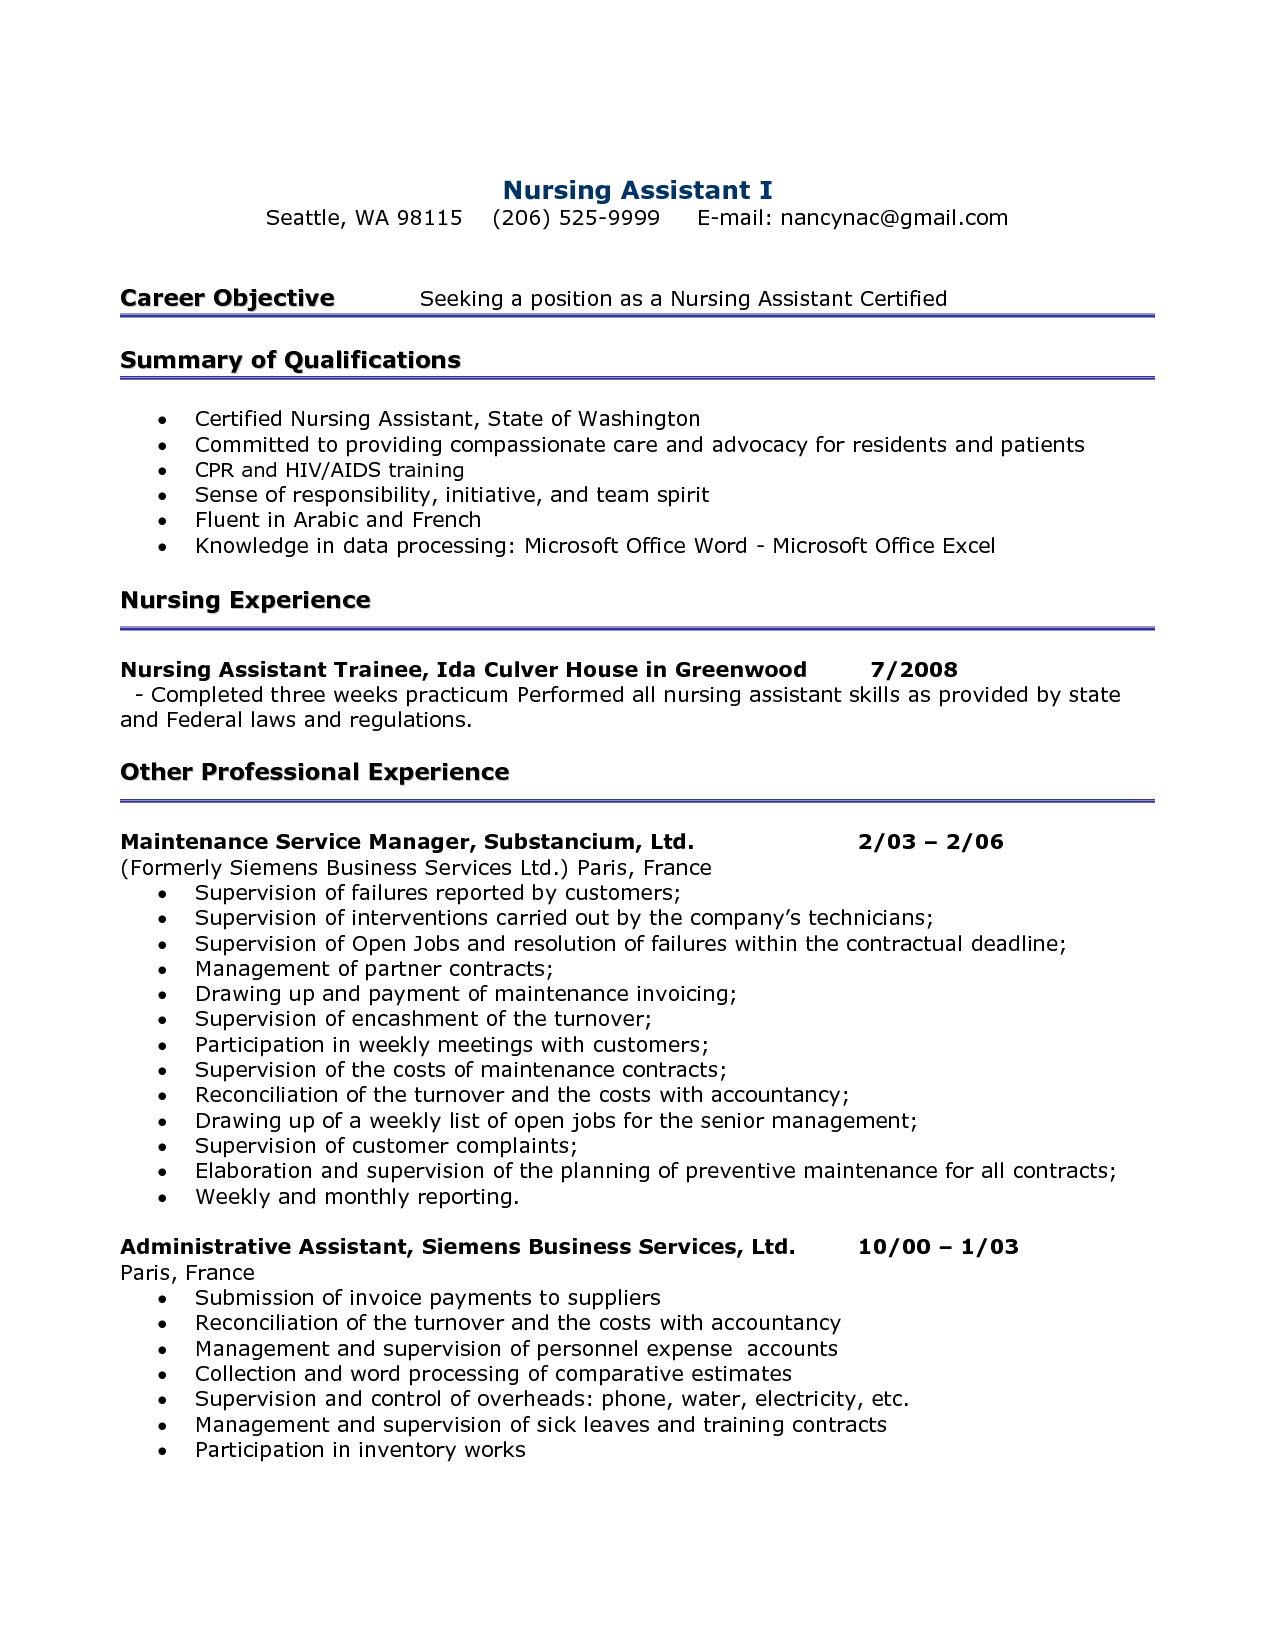 Certified Nursing Assistant Resume   Http://www.resumecareer.info/certified  Nursing Assistant Resume 7/